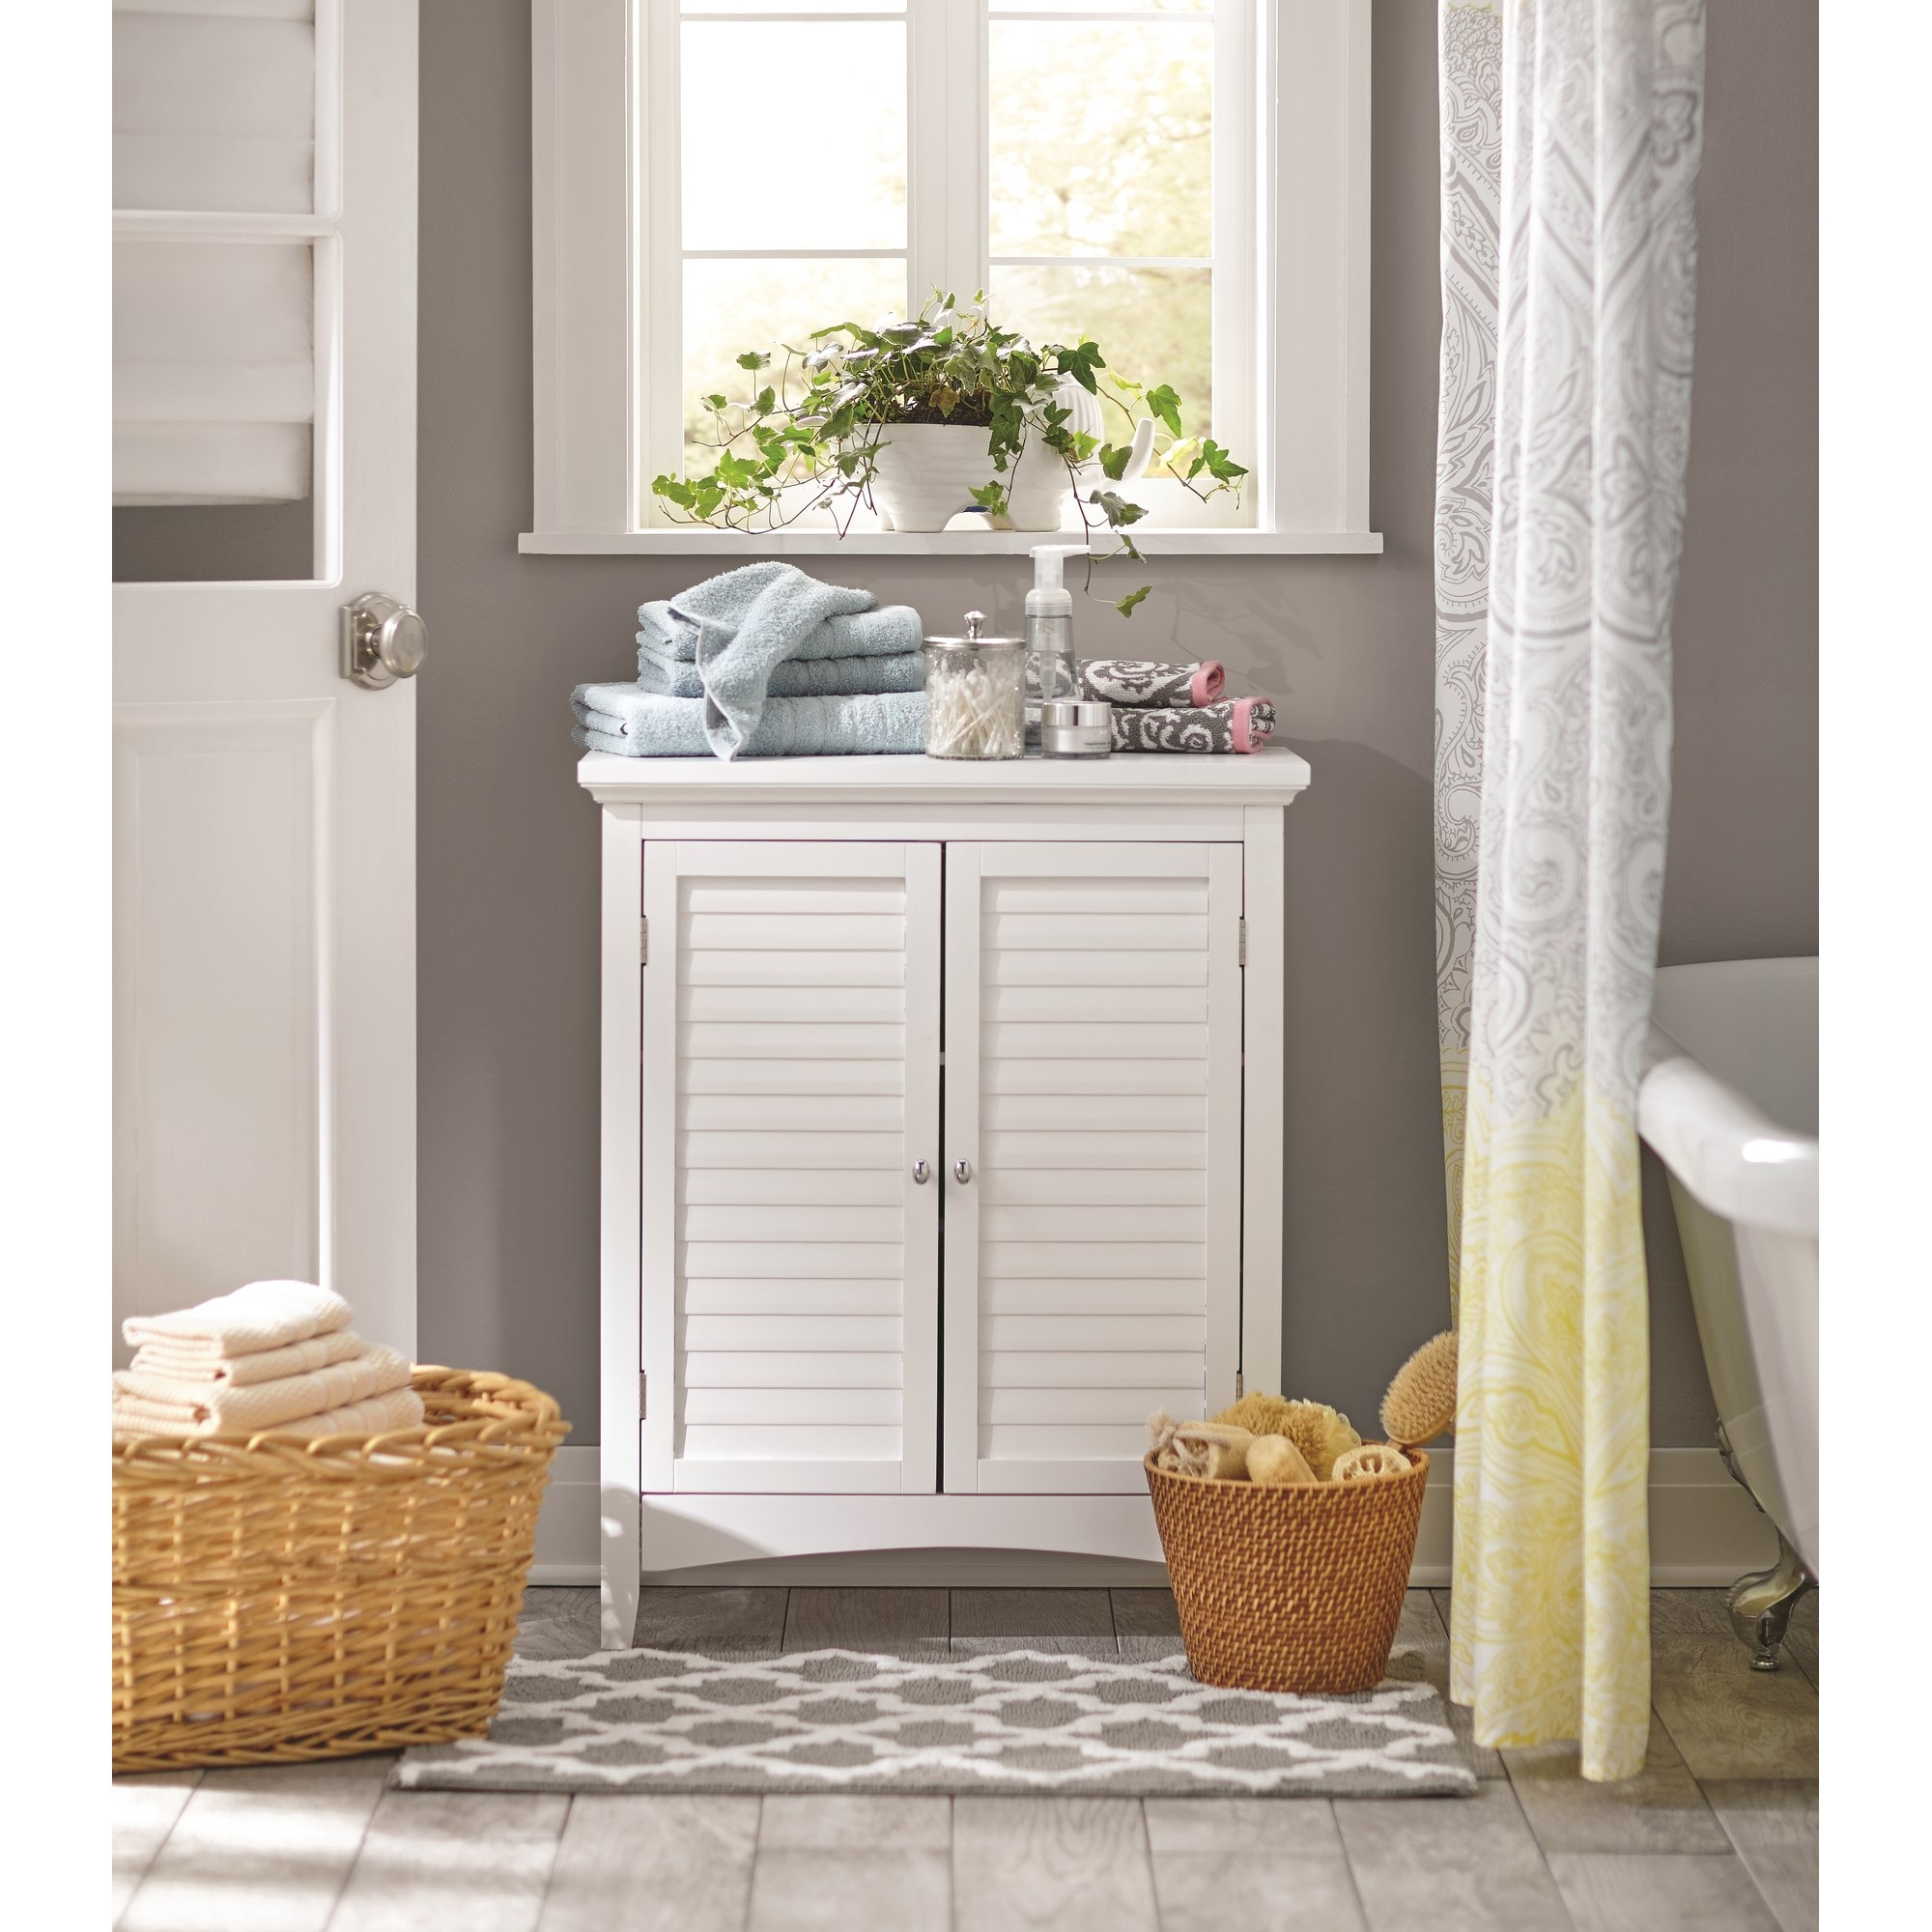 Standing Cabinet For Bathroom